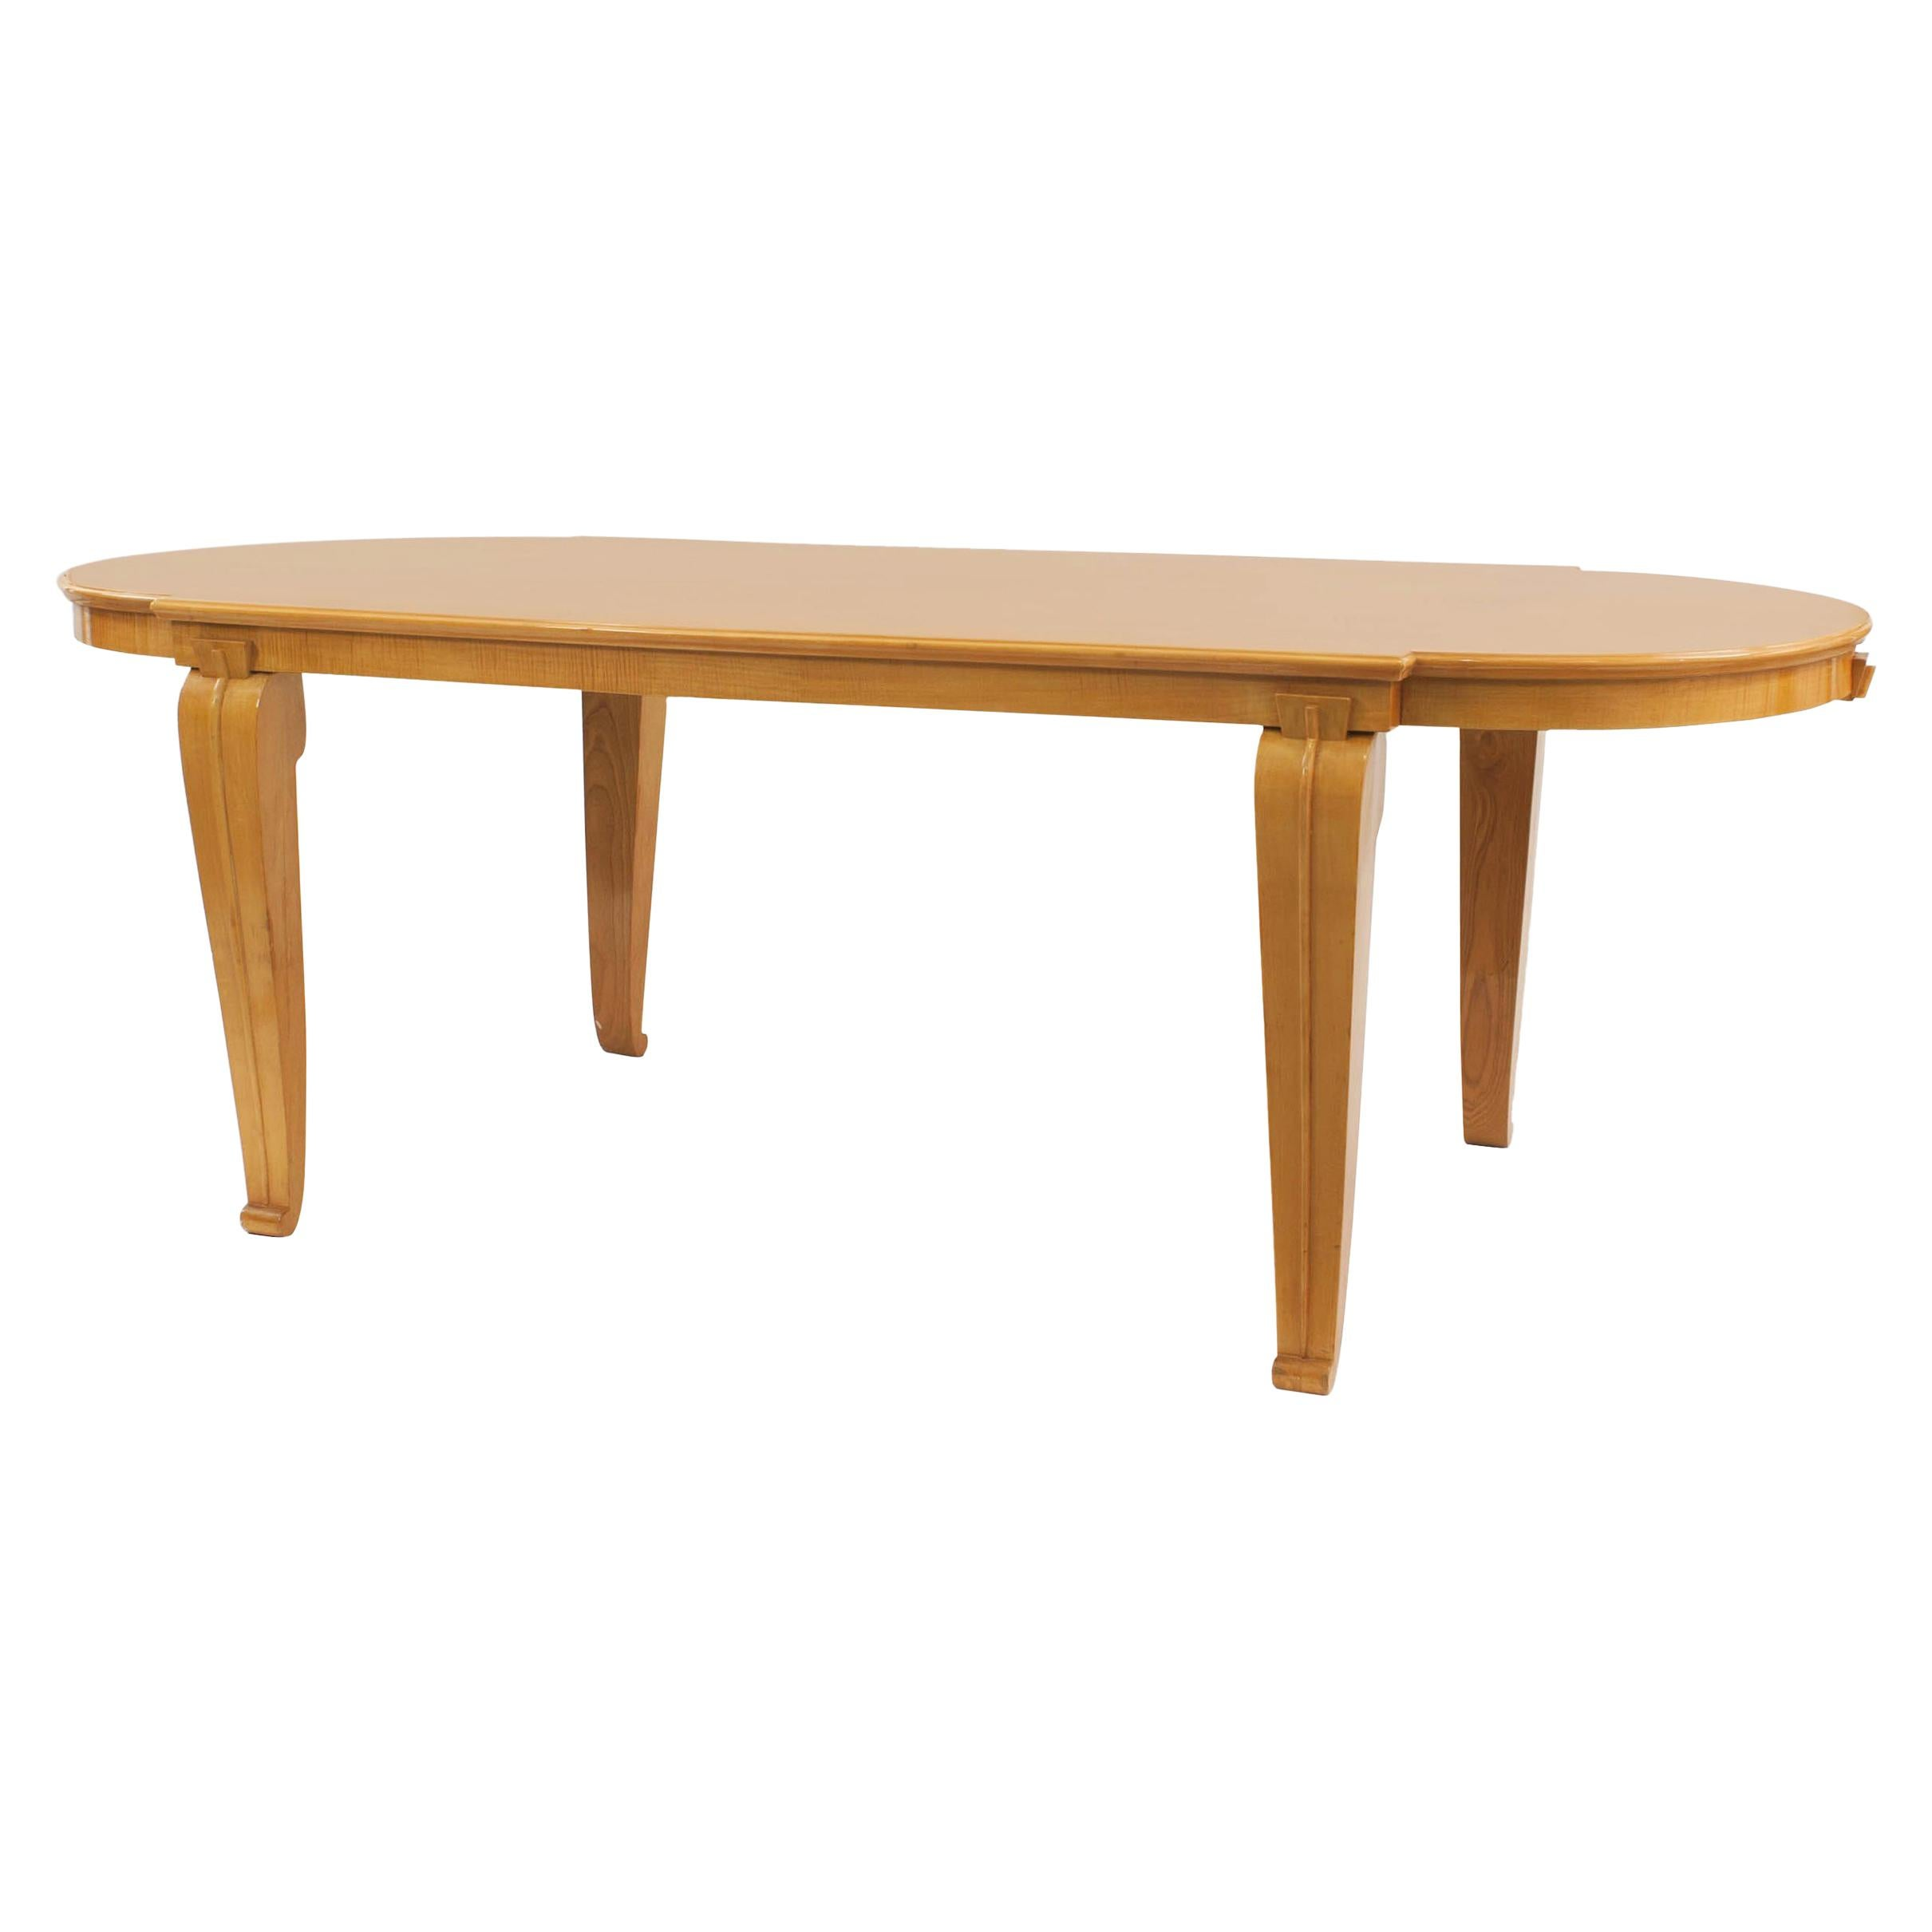 Midcentury French Sycamore Dining Table, Attributed to André Arbus